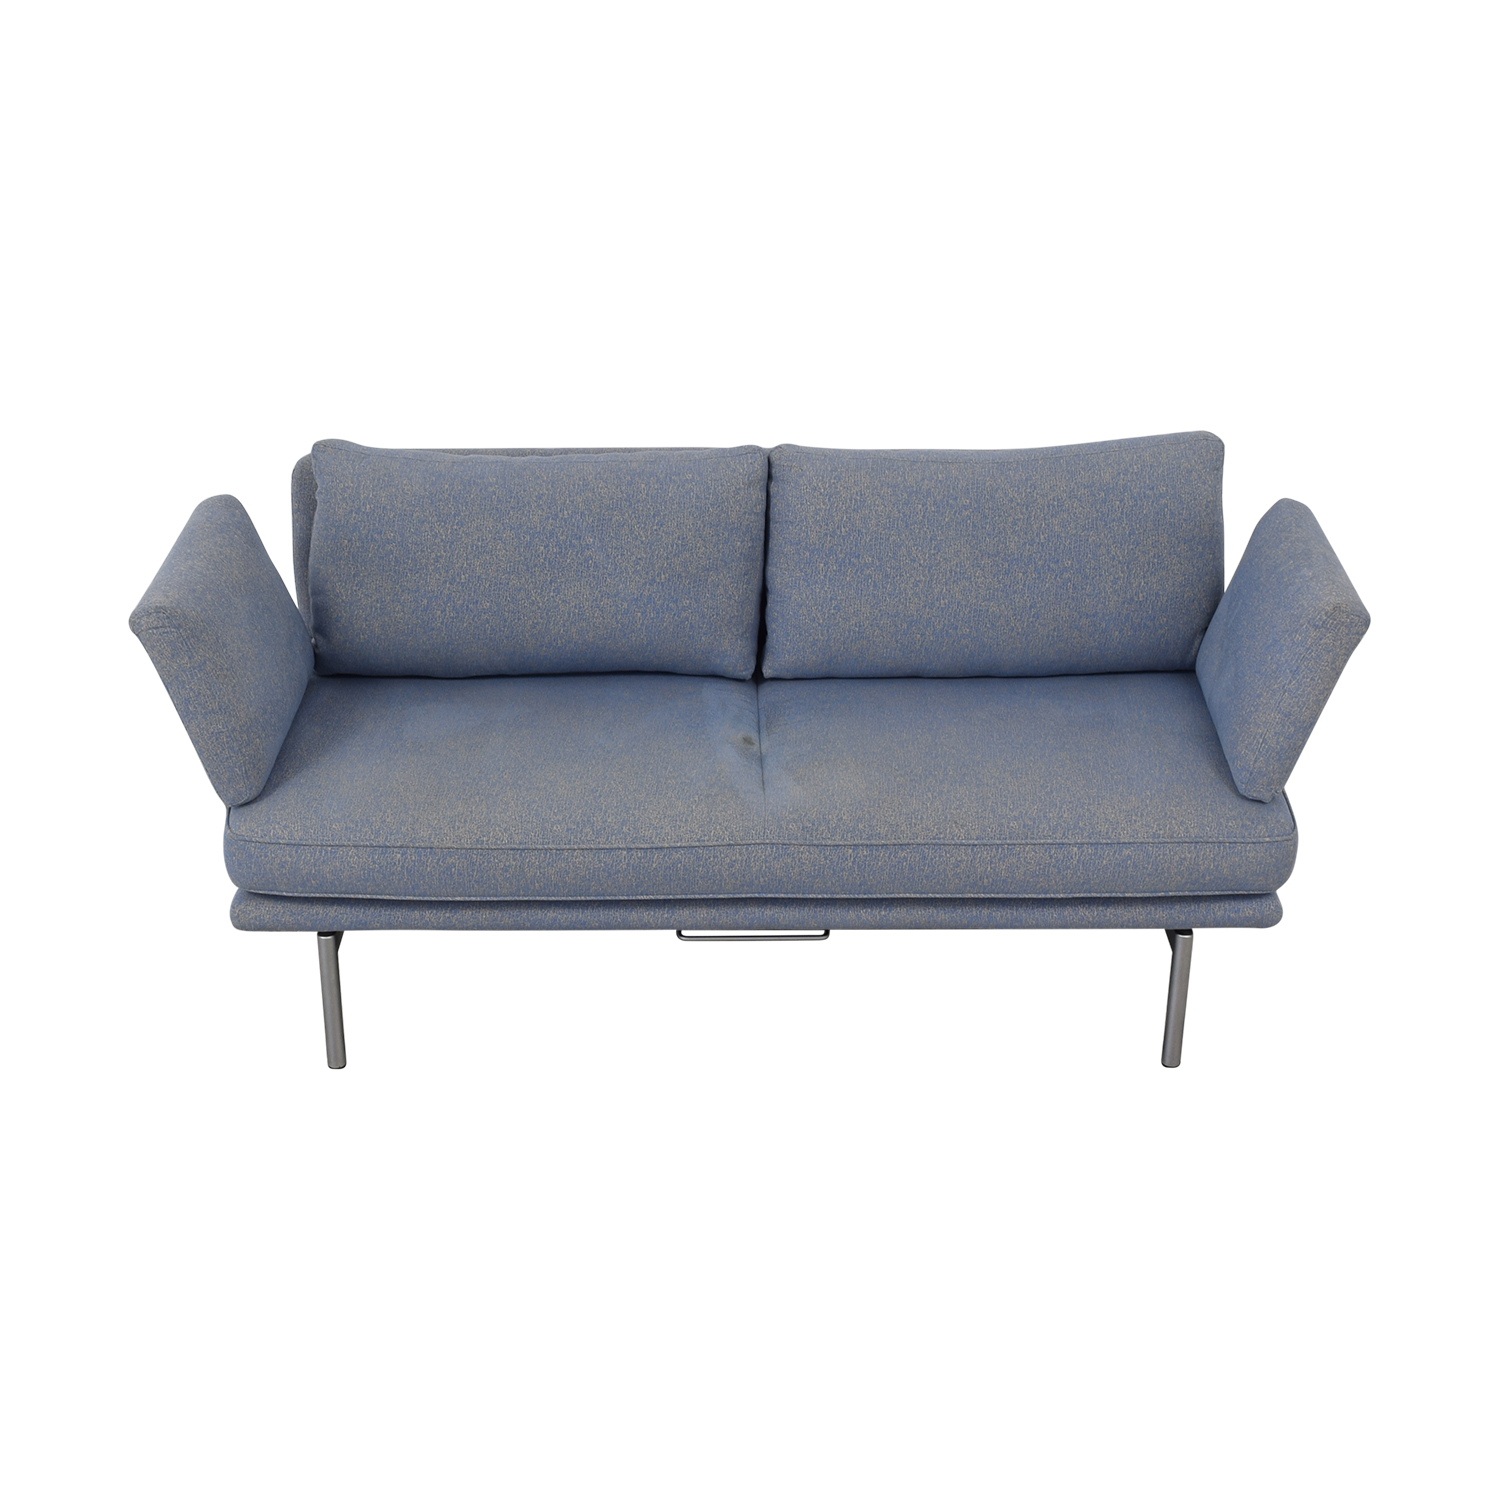 Merveilleux 77% OFF   Contemporary Sofa With Adjustable Arms / Sofas